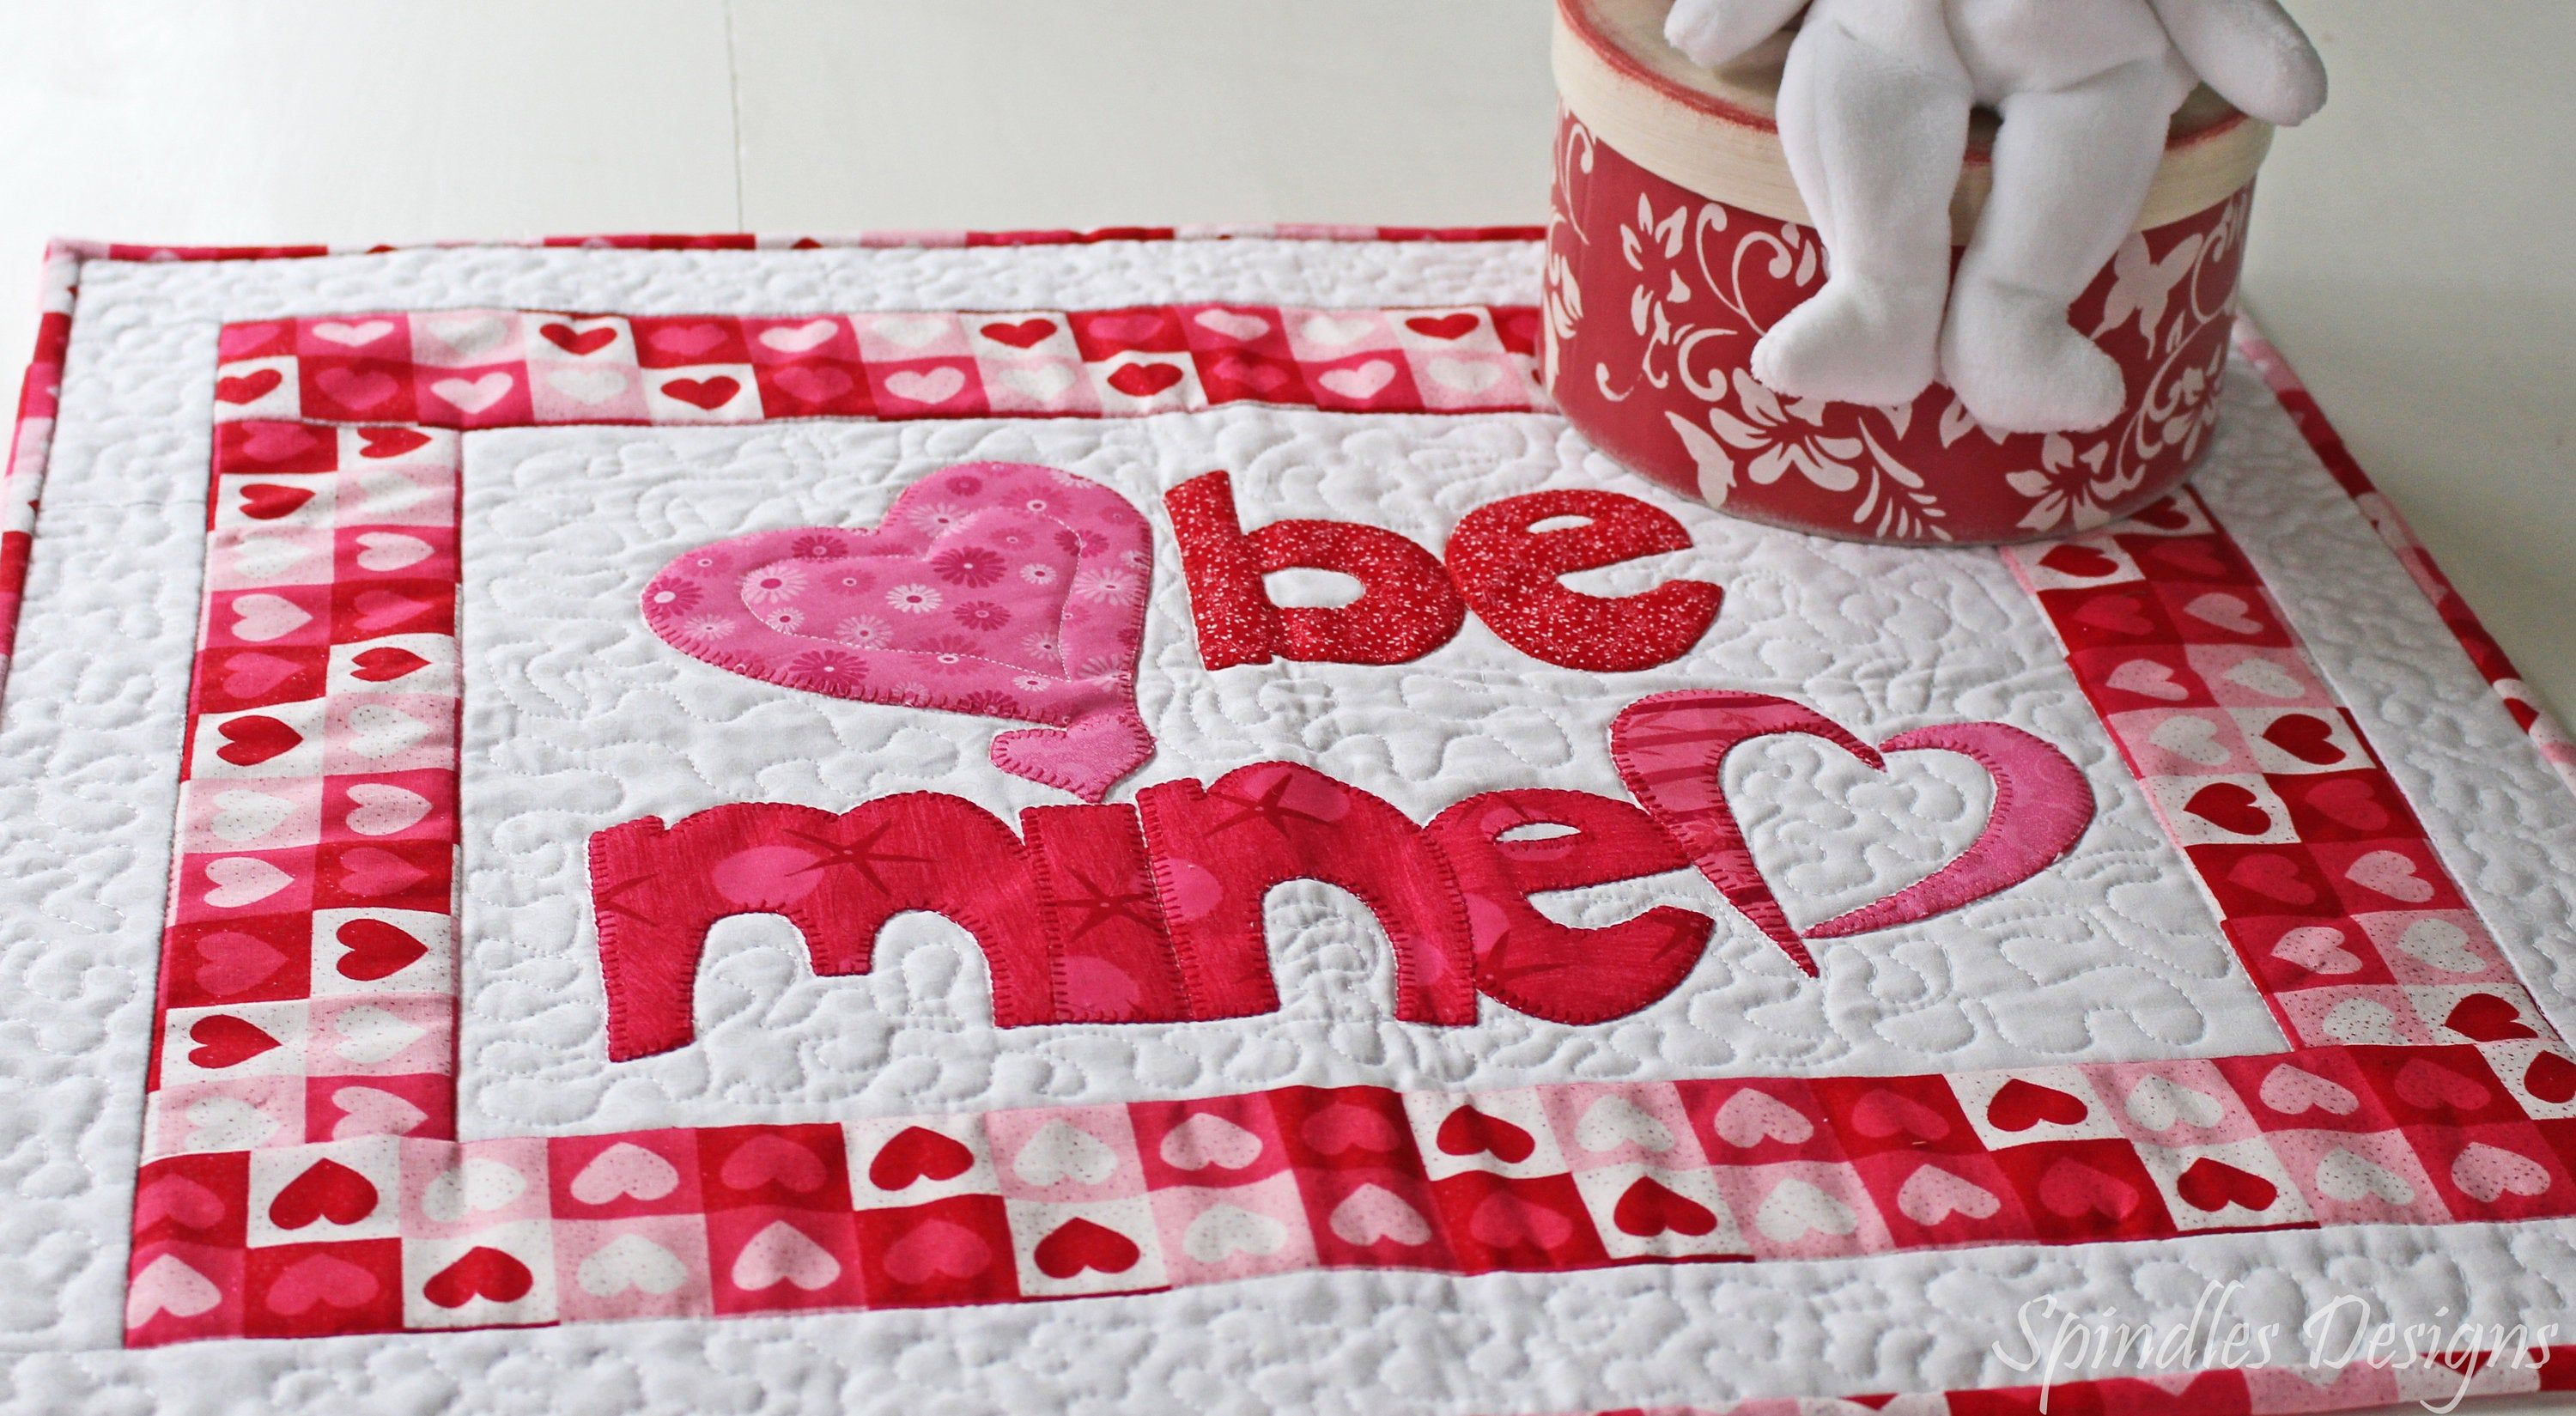 Quilted Table Topper Valentine S Day Table Topper Applique Table Topper Quilt Valentine S Day Wall Hanging Quilt In 2020 Quilted Wall Hangings Quilted Table Toppers Hanging Quilts